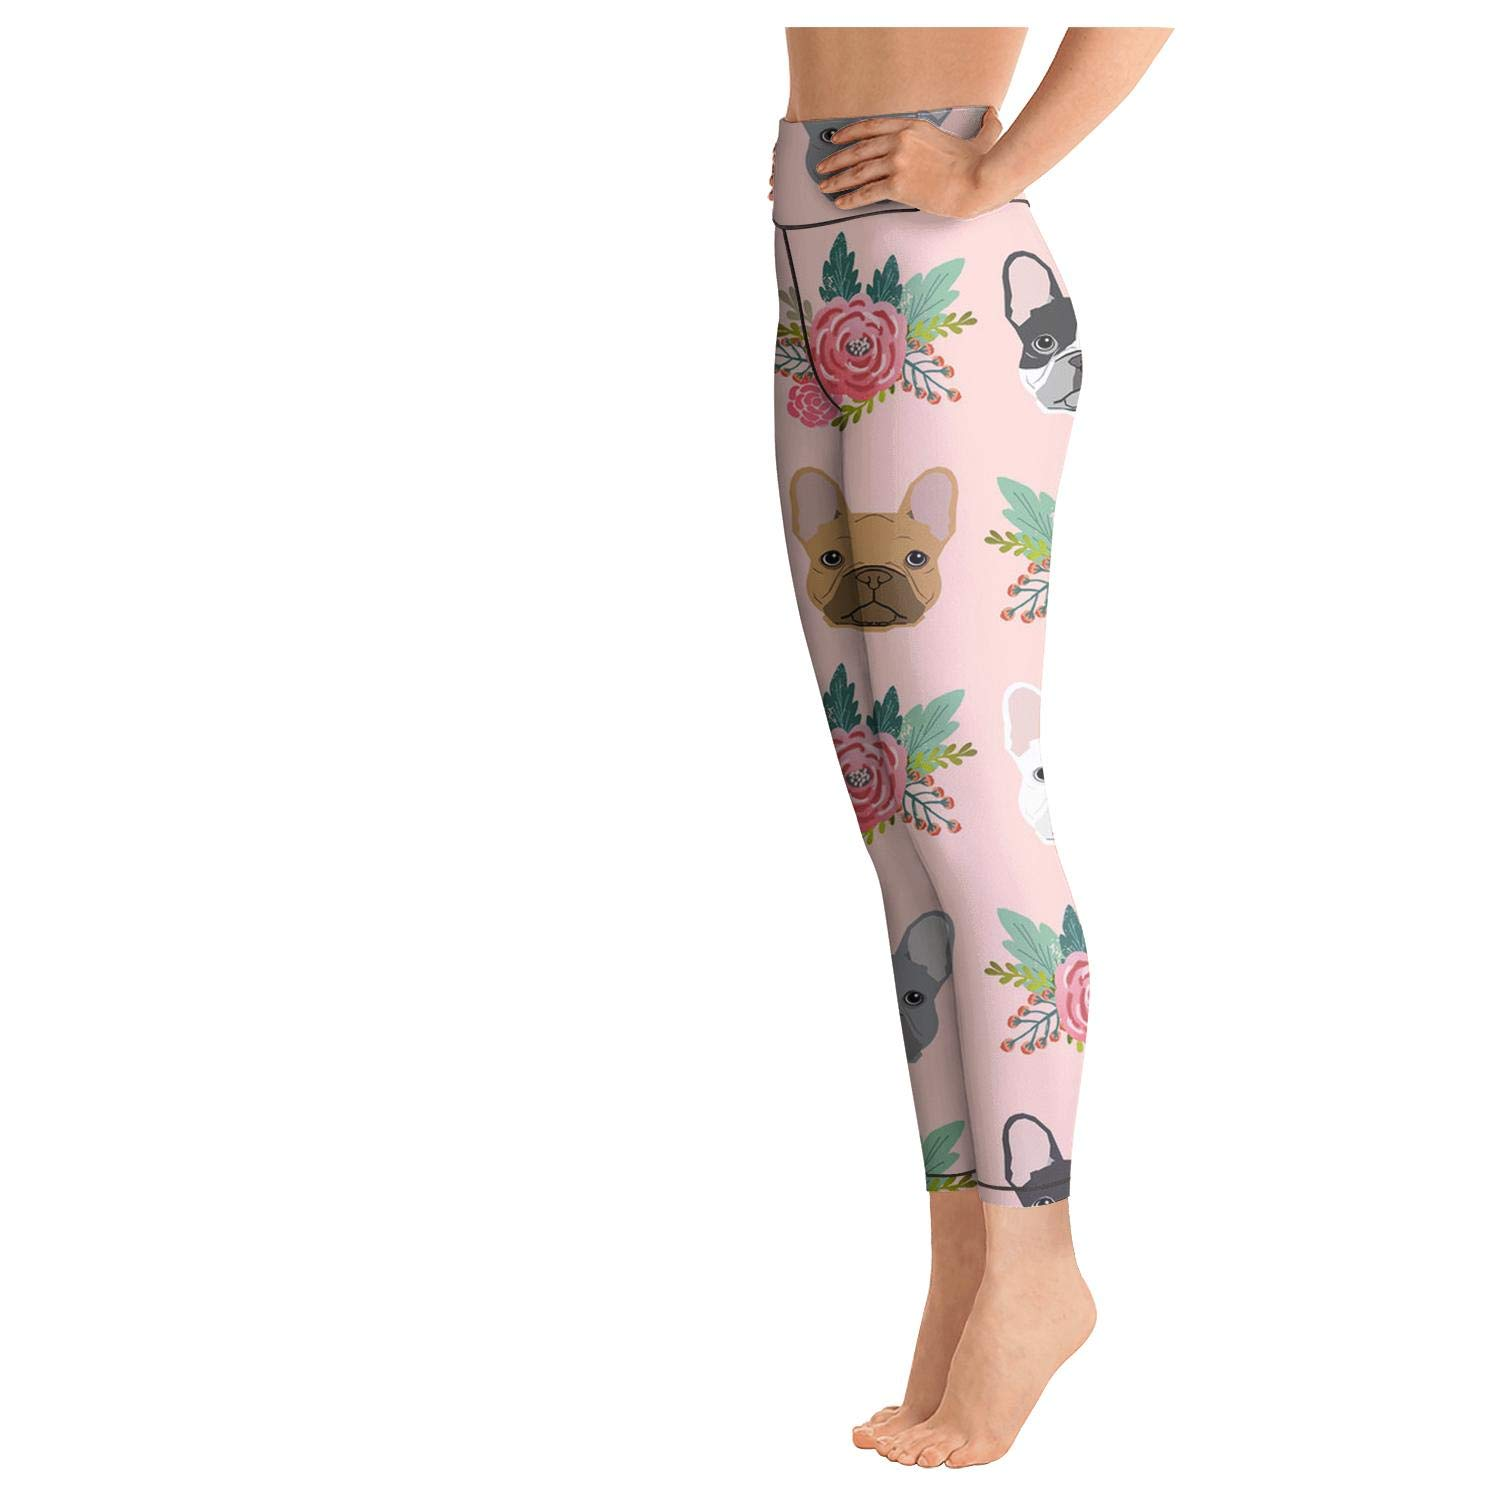 Women Yoga Pants Printed Legging Pink French Bulldog Flowers Florals Outfits Capris